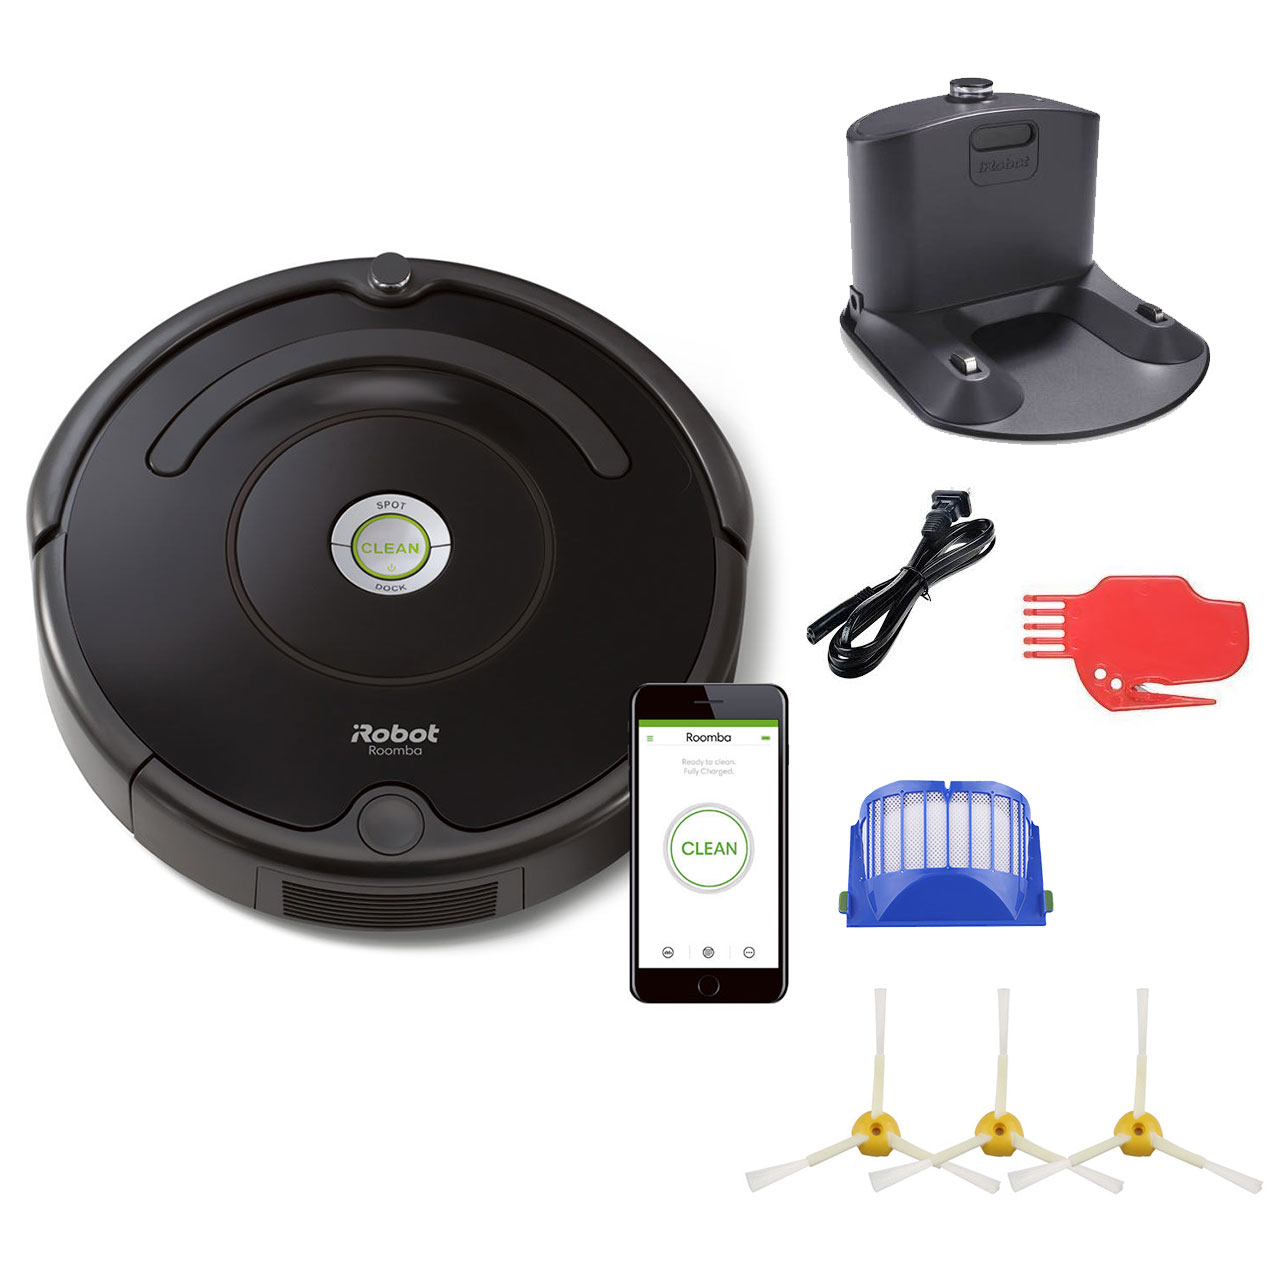 Irobot Roomba 675 Robot Vacuum And Wi Fi Bundle With 3 Extra Side Brushes 8 Items Walmart Com Walmart Com